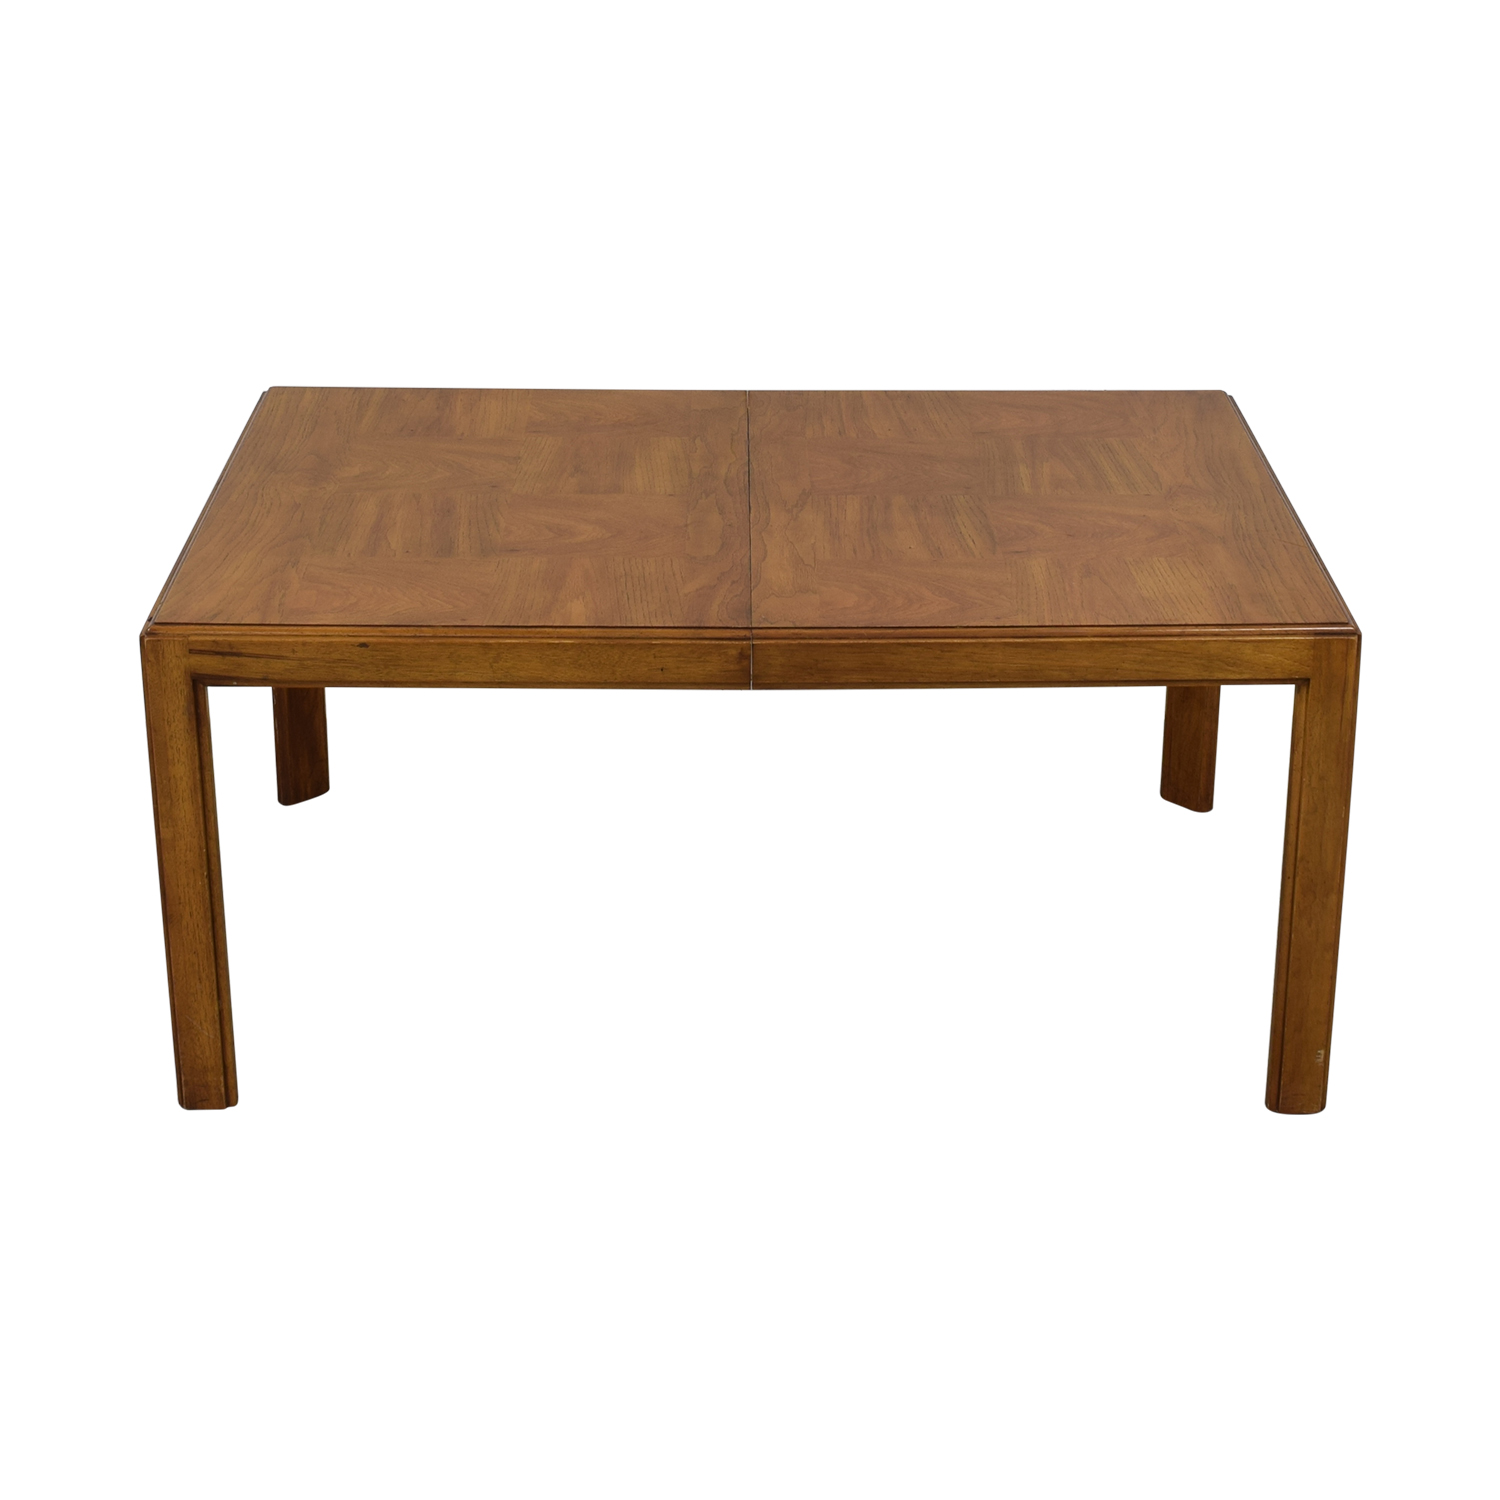 Drexel Heritage Drexel Heritage Dining Table nyc